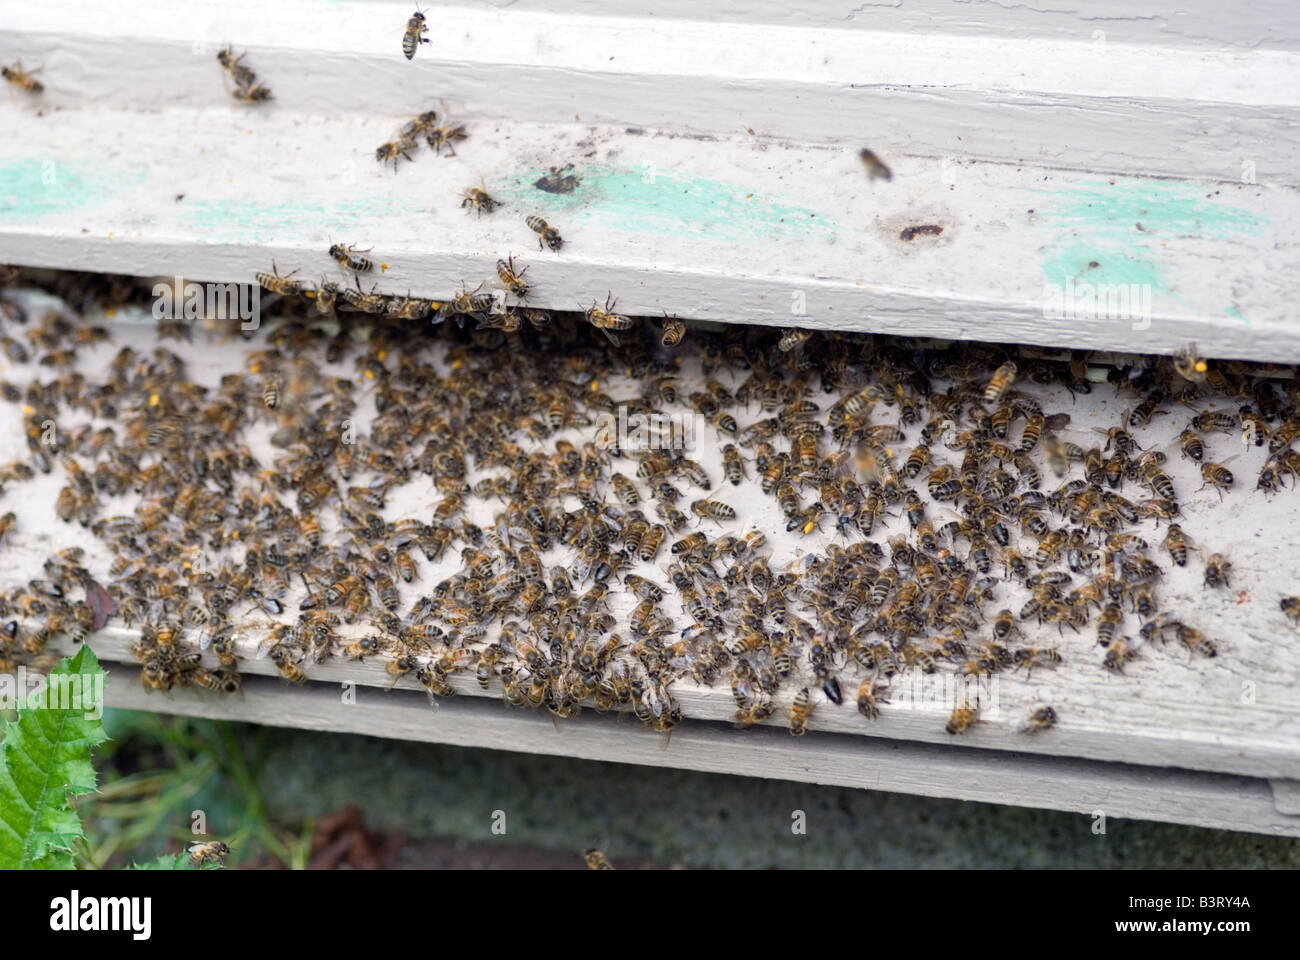 European Honey Bees - Stock Image